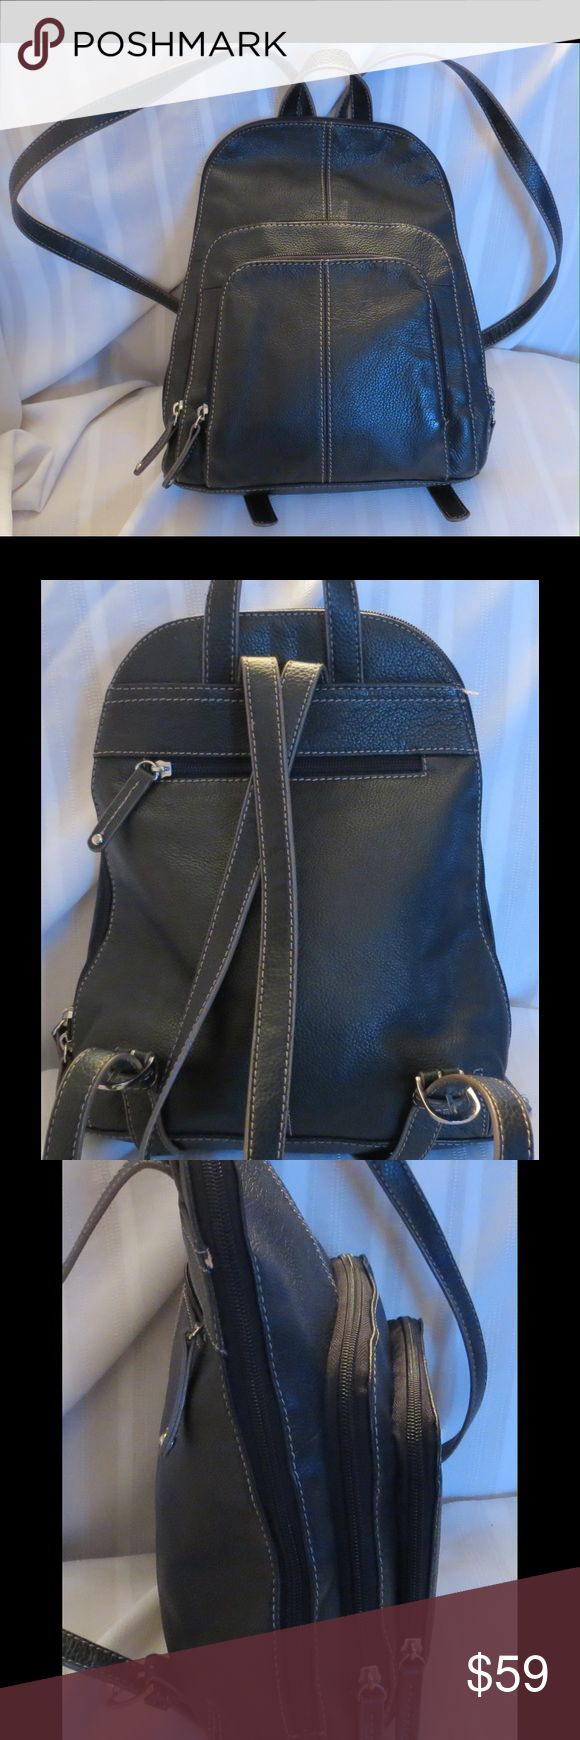 "Super Cute Tignanello Black Leather Backpack Bag Super Cute Tignanello Black Leather Backpack Bag  Excellent gently used condition Tons of different compartments 9 of them plus a bunch or credit card holder slots  All of my items are Guaranteed 100% Genuine I do not sell FAKES of any kind   Approx Measurements:   11""  X   9.5""  X  3""    No Trades (S086) Tignanello Bags"